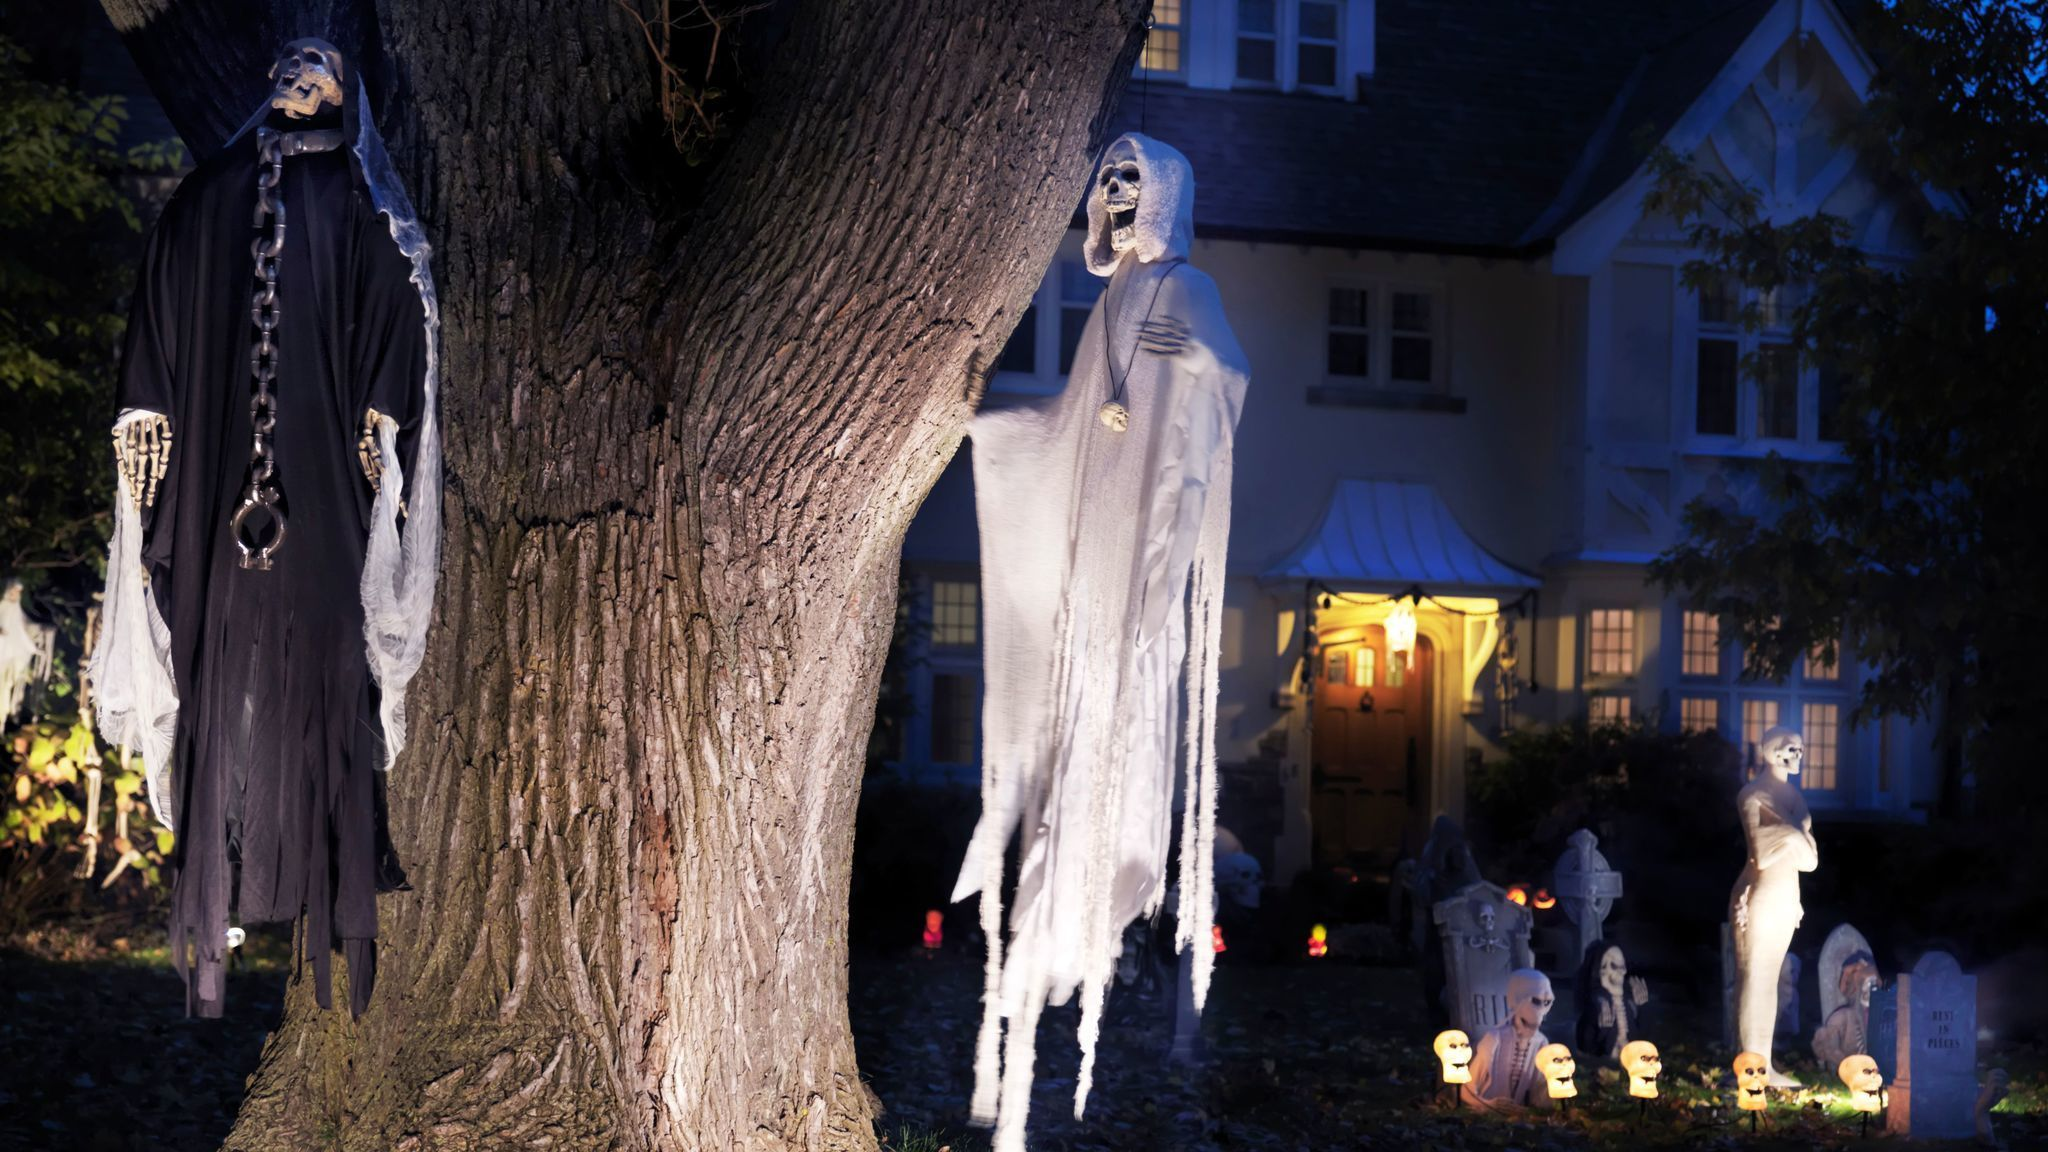 what to say if neighbors' halloween decorations are too scary